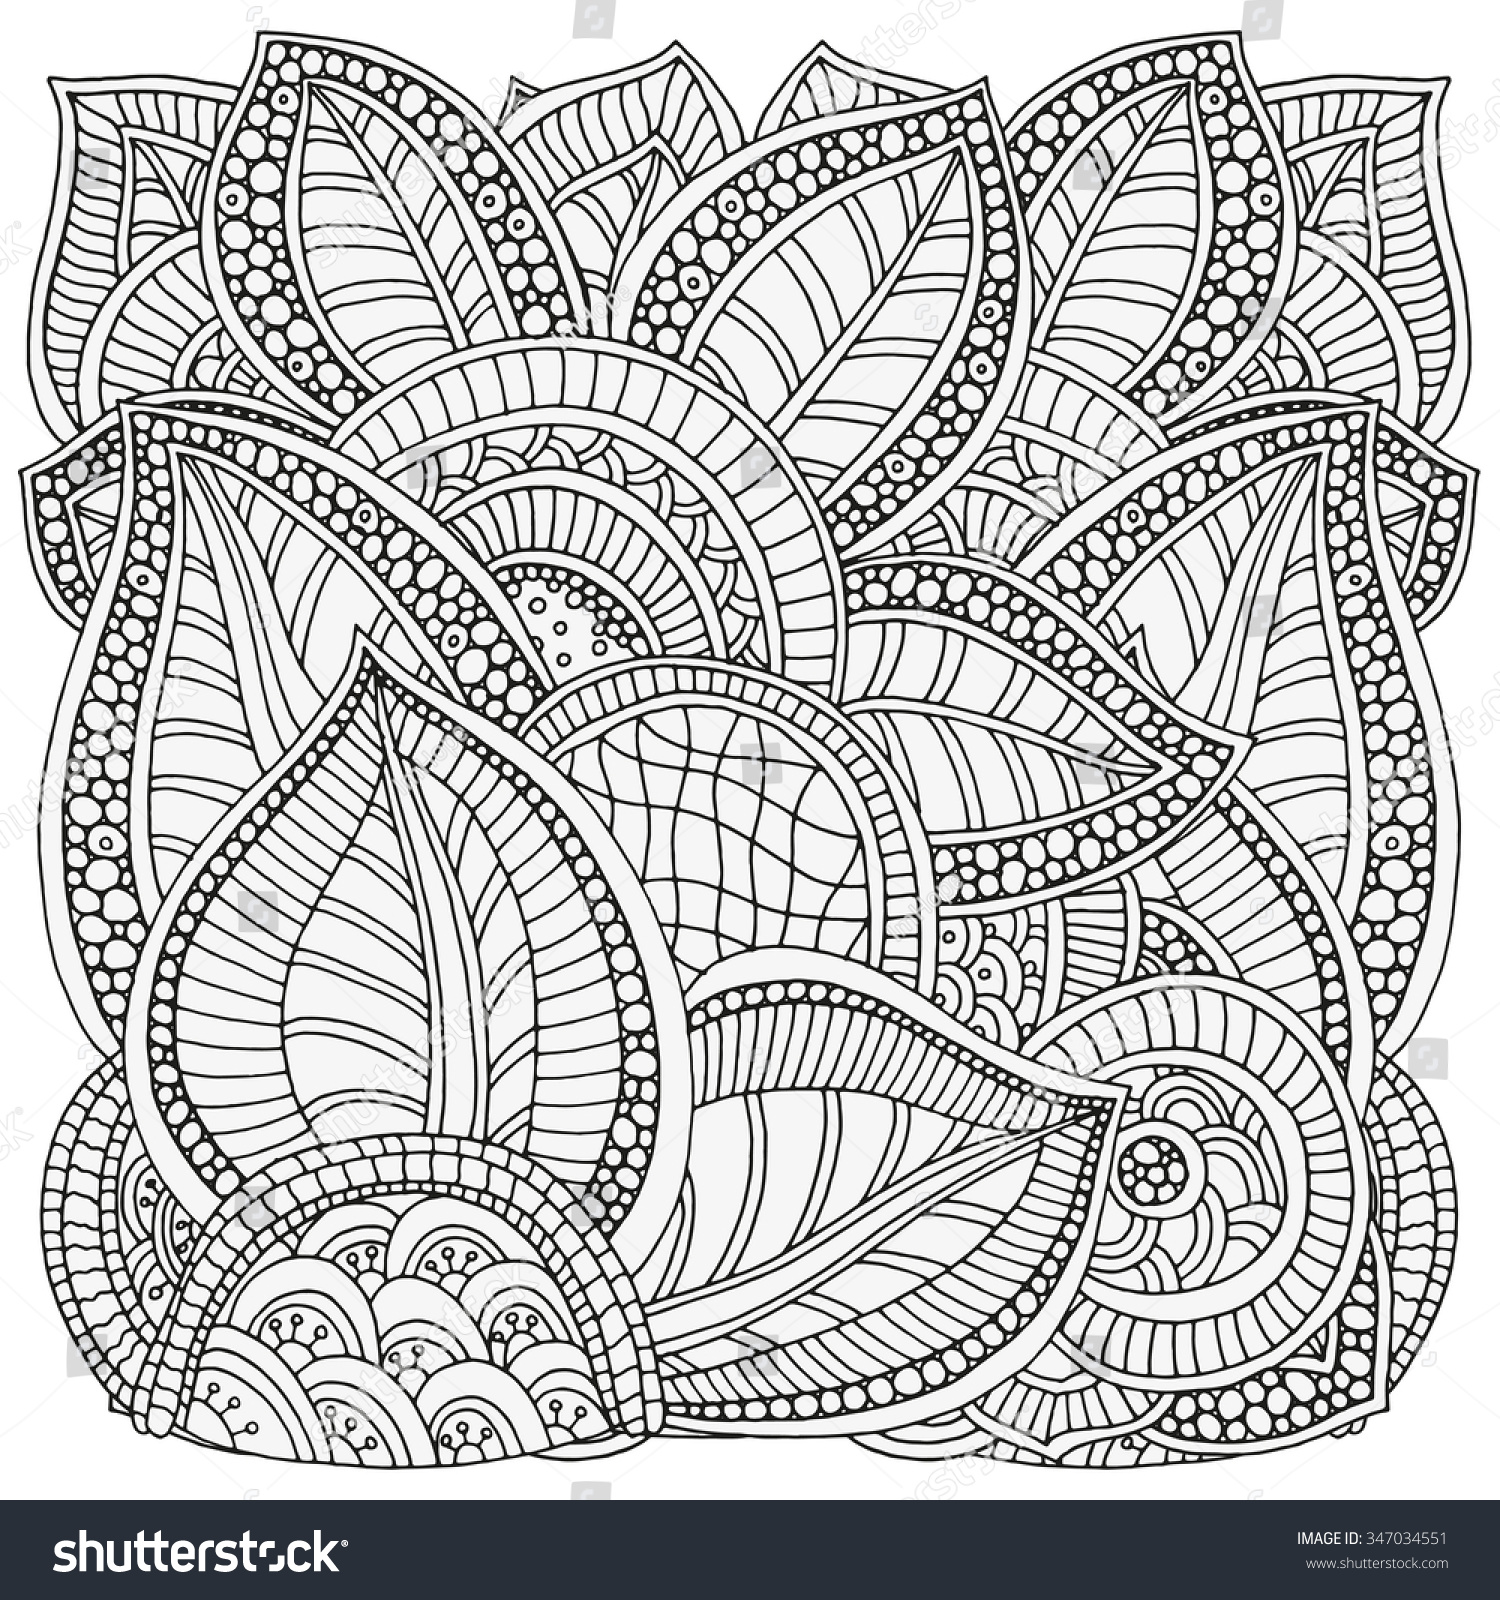 Pattern Coloring Book Ethnic Floral Retro Stock Vector